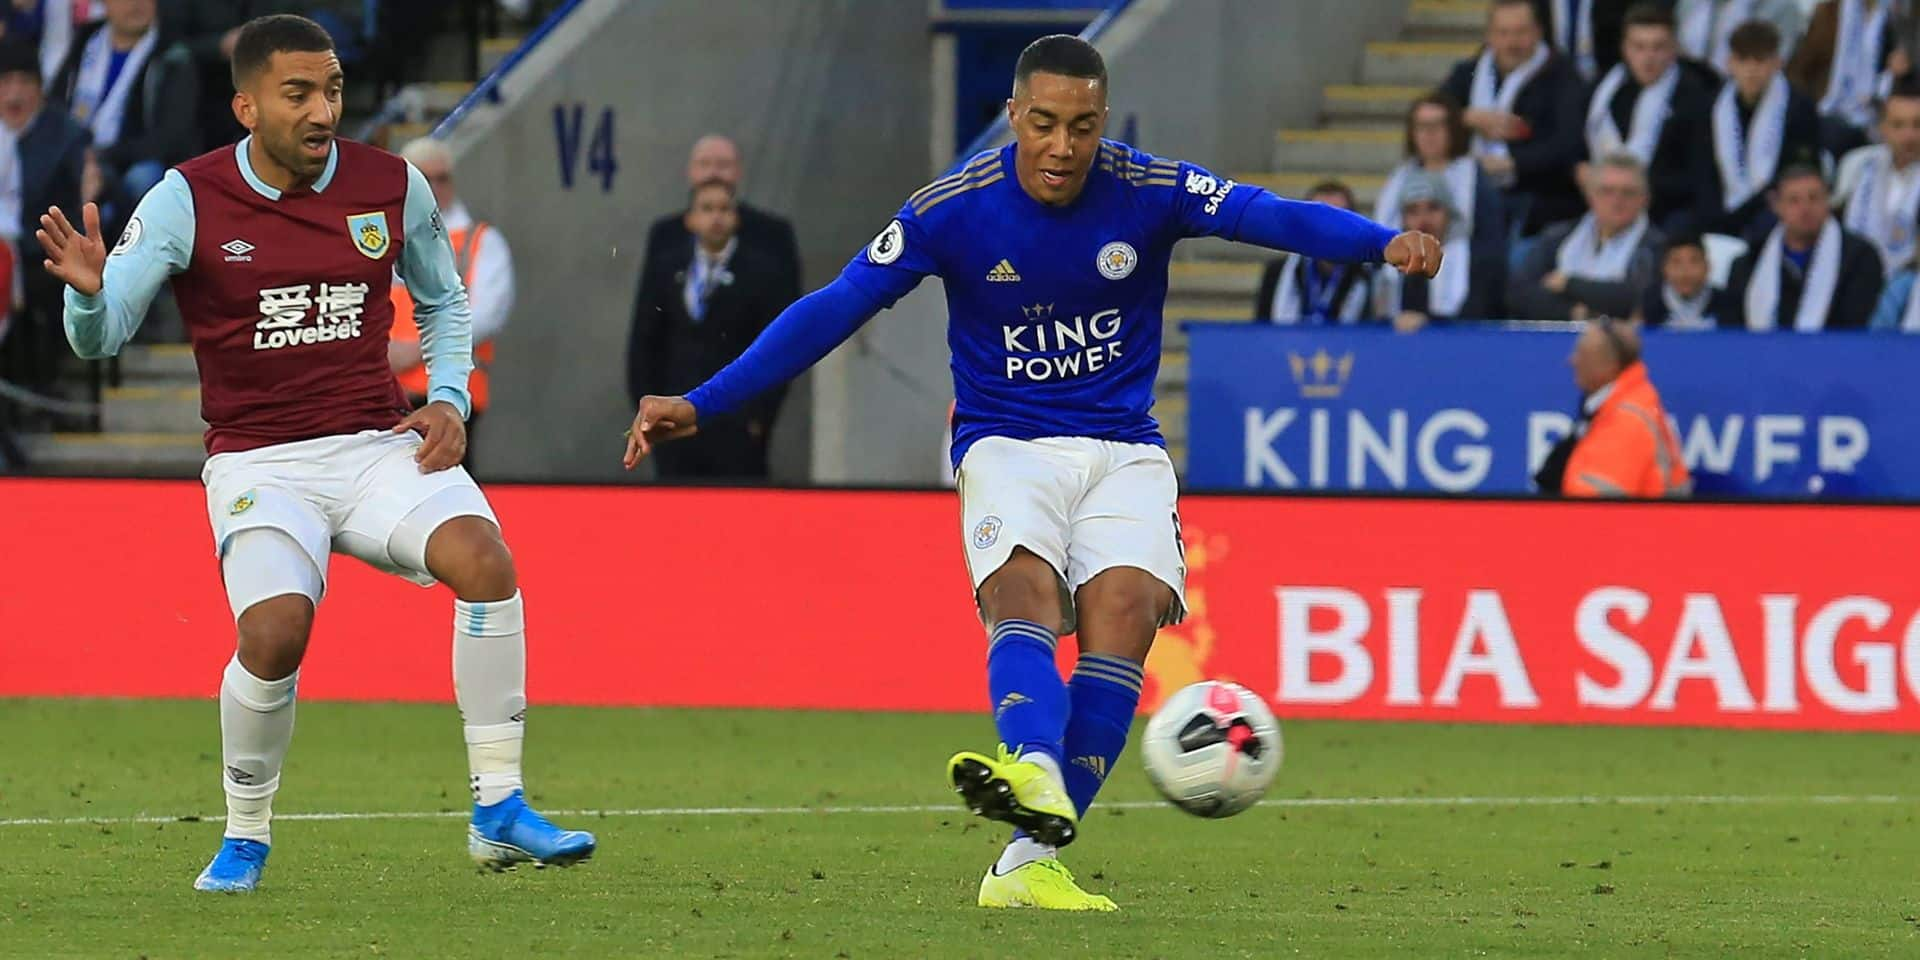 Youri Tielemans version Ligue des champions